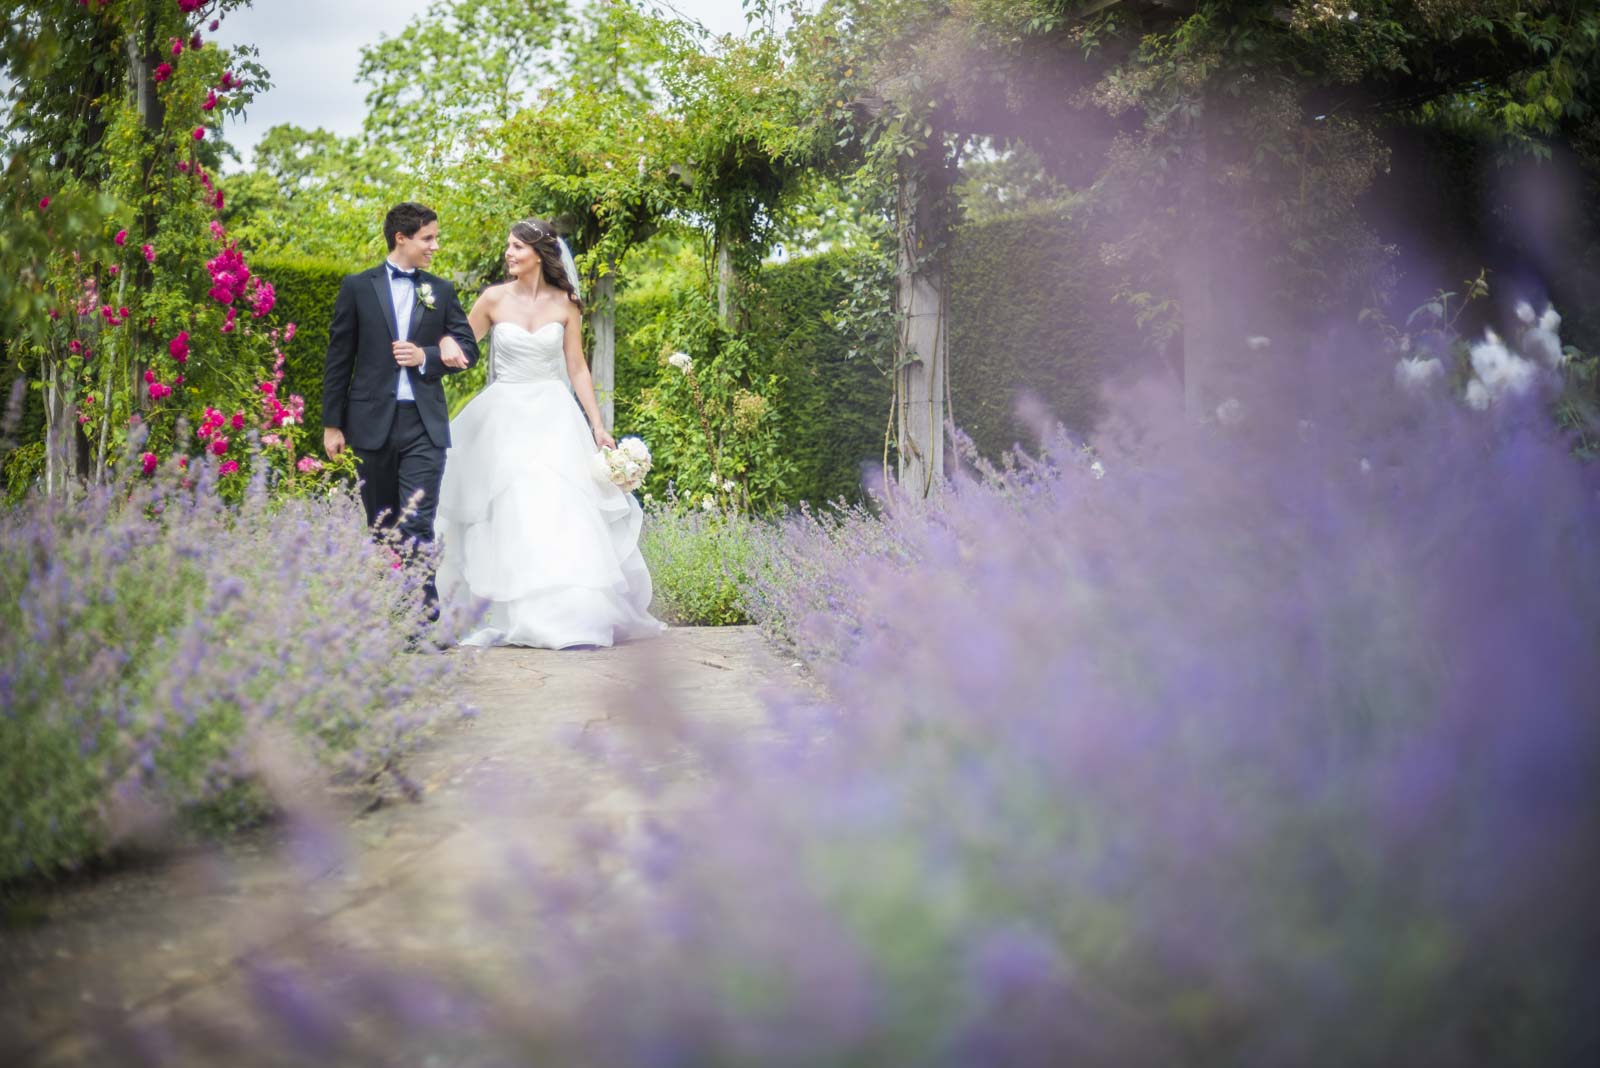 London Wedding Photographer, Great Fosters Hotel in Egham, Anthony and Kirsty Wedding Photography (218 of 403)